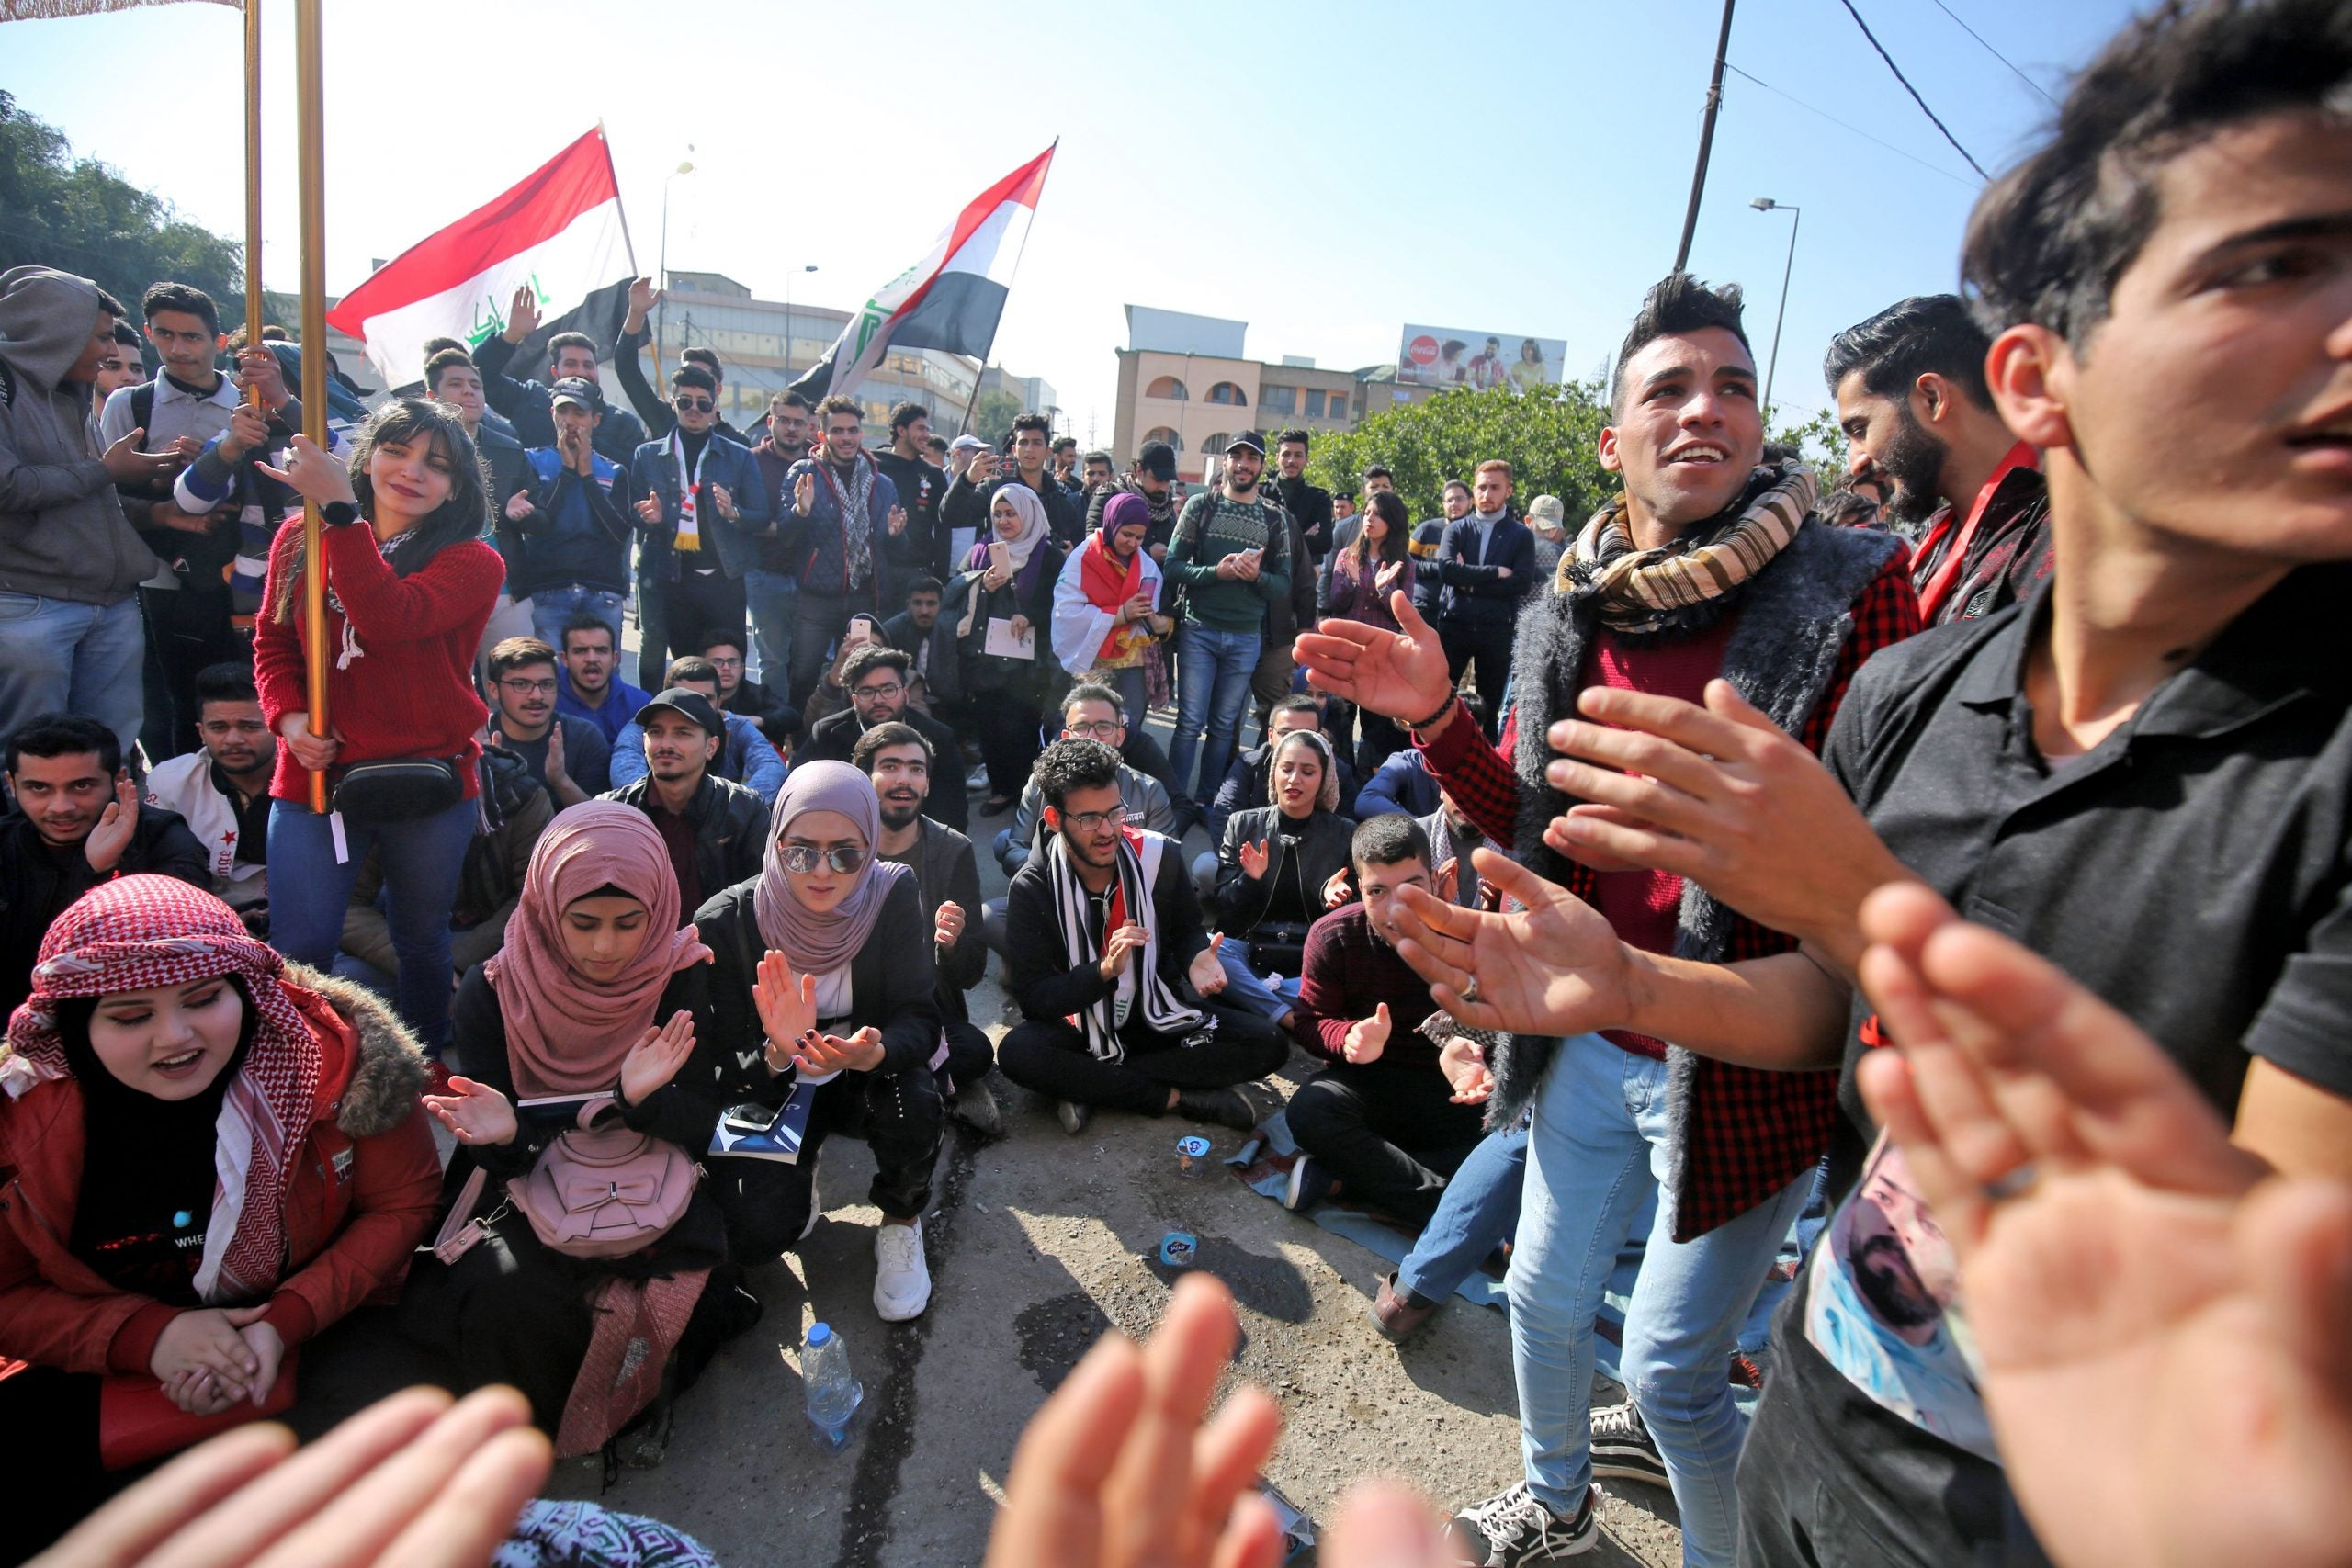 Jeremy Bowen's Diary: Hope and fear in Baghdad, the aftermath of the Soleimani killing, and history's lessons